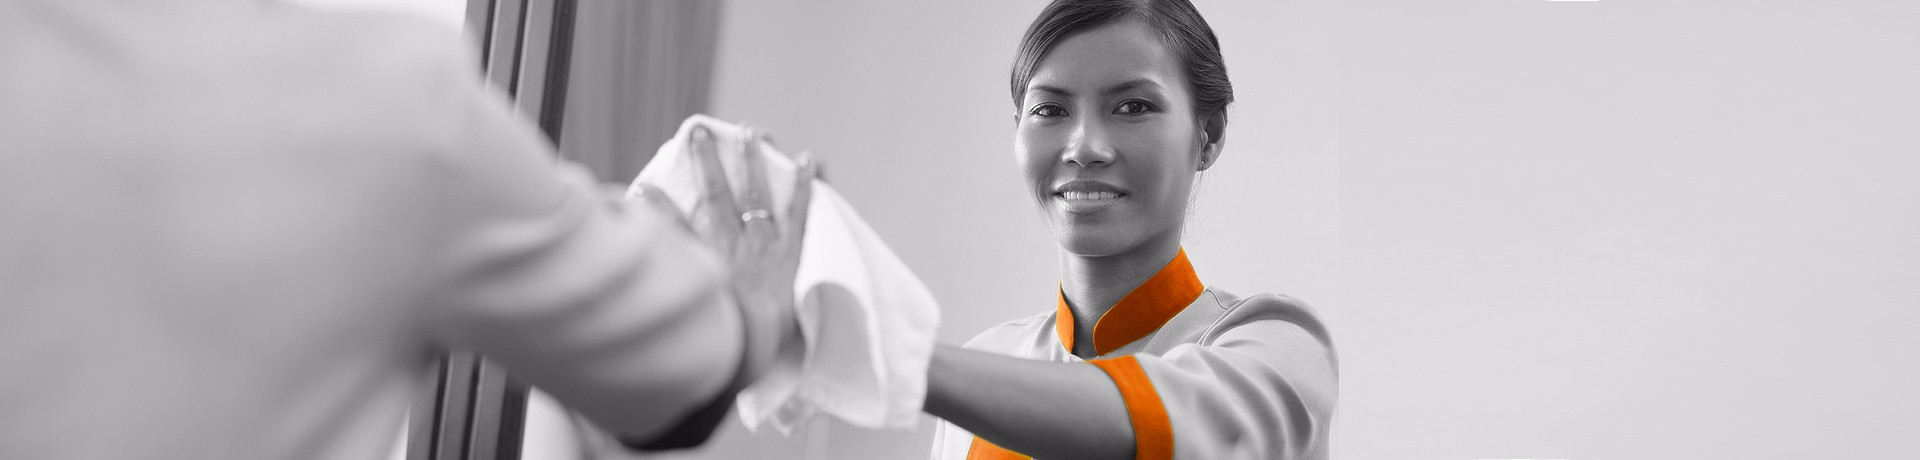 Cleaning & Housekeeping Staff